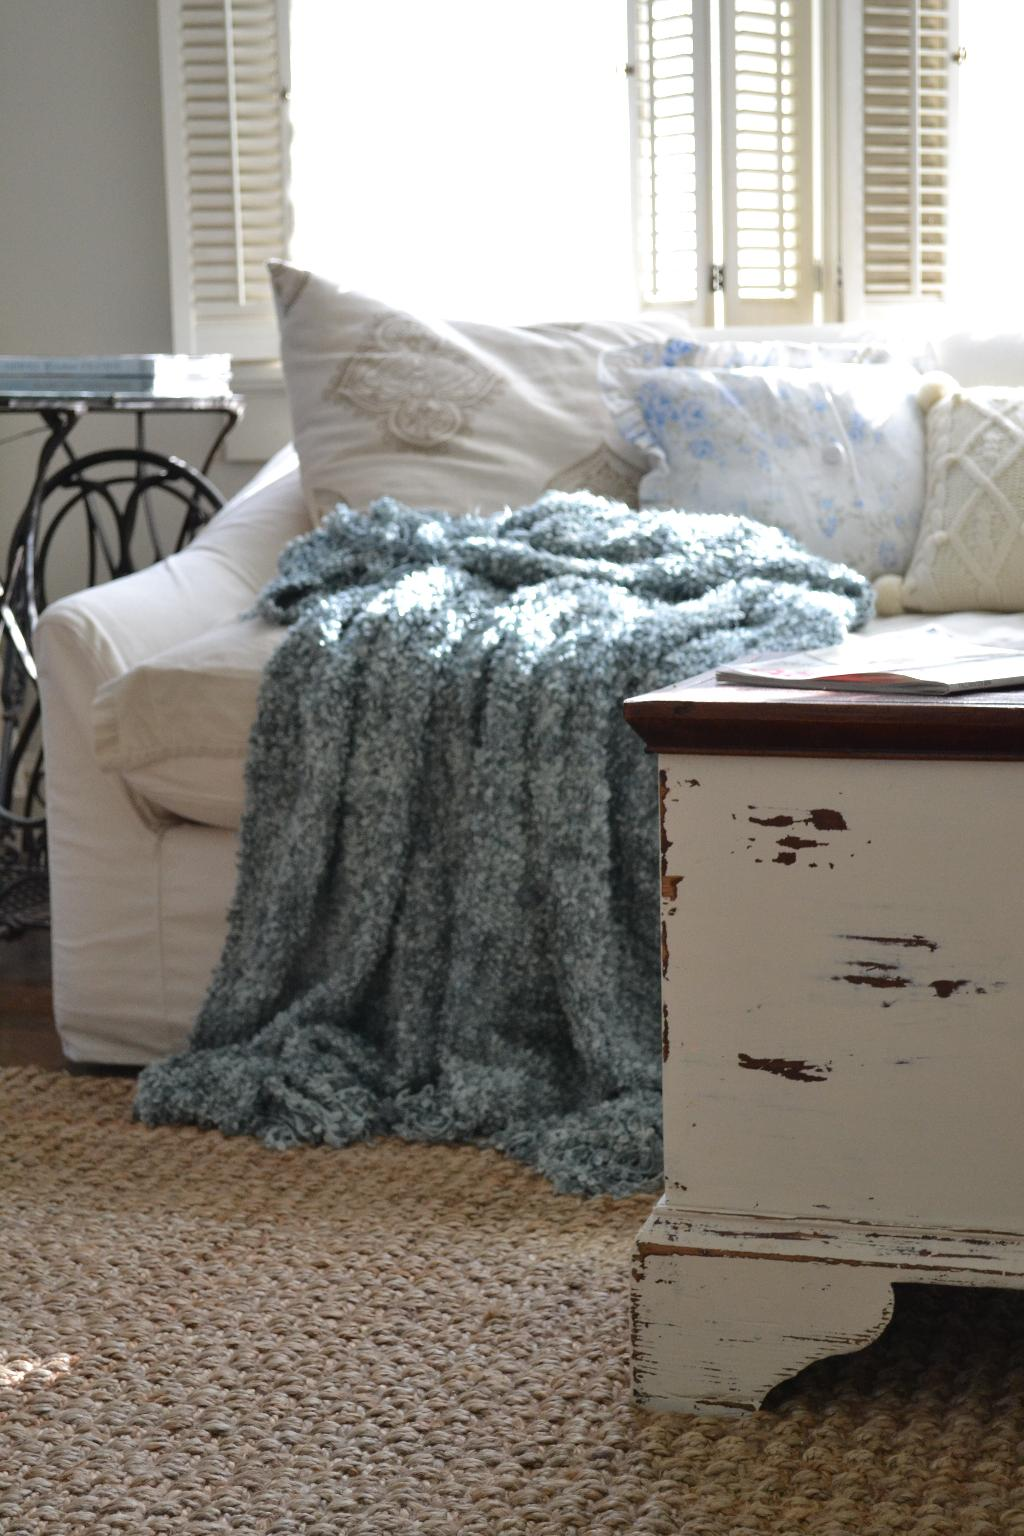 Cottage Fix - natural fiber rug, chippy paint trunk, and white sofa